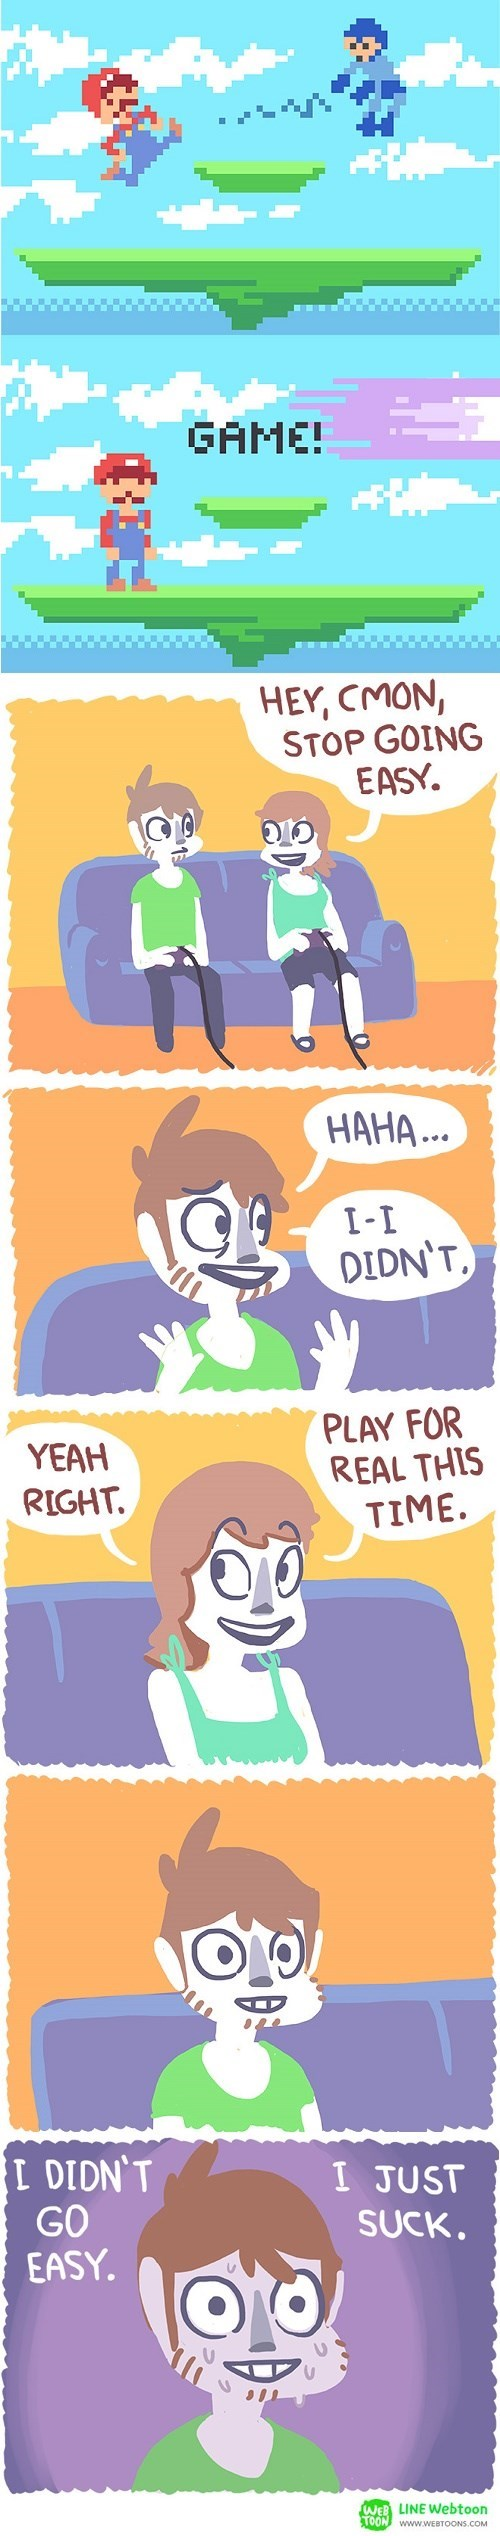 gaming shame super smash bros web comics - 8364388864